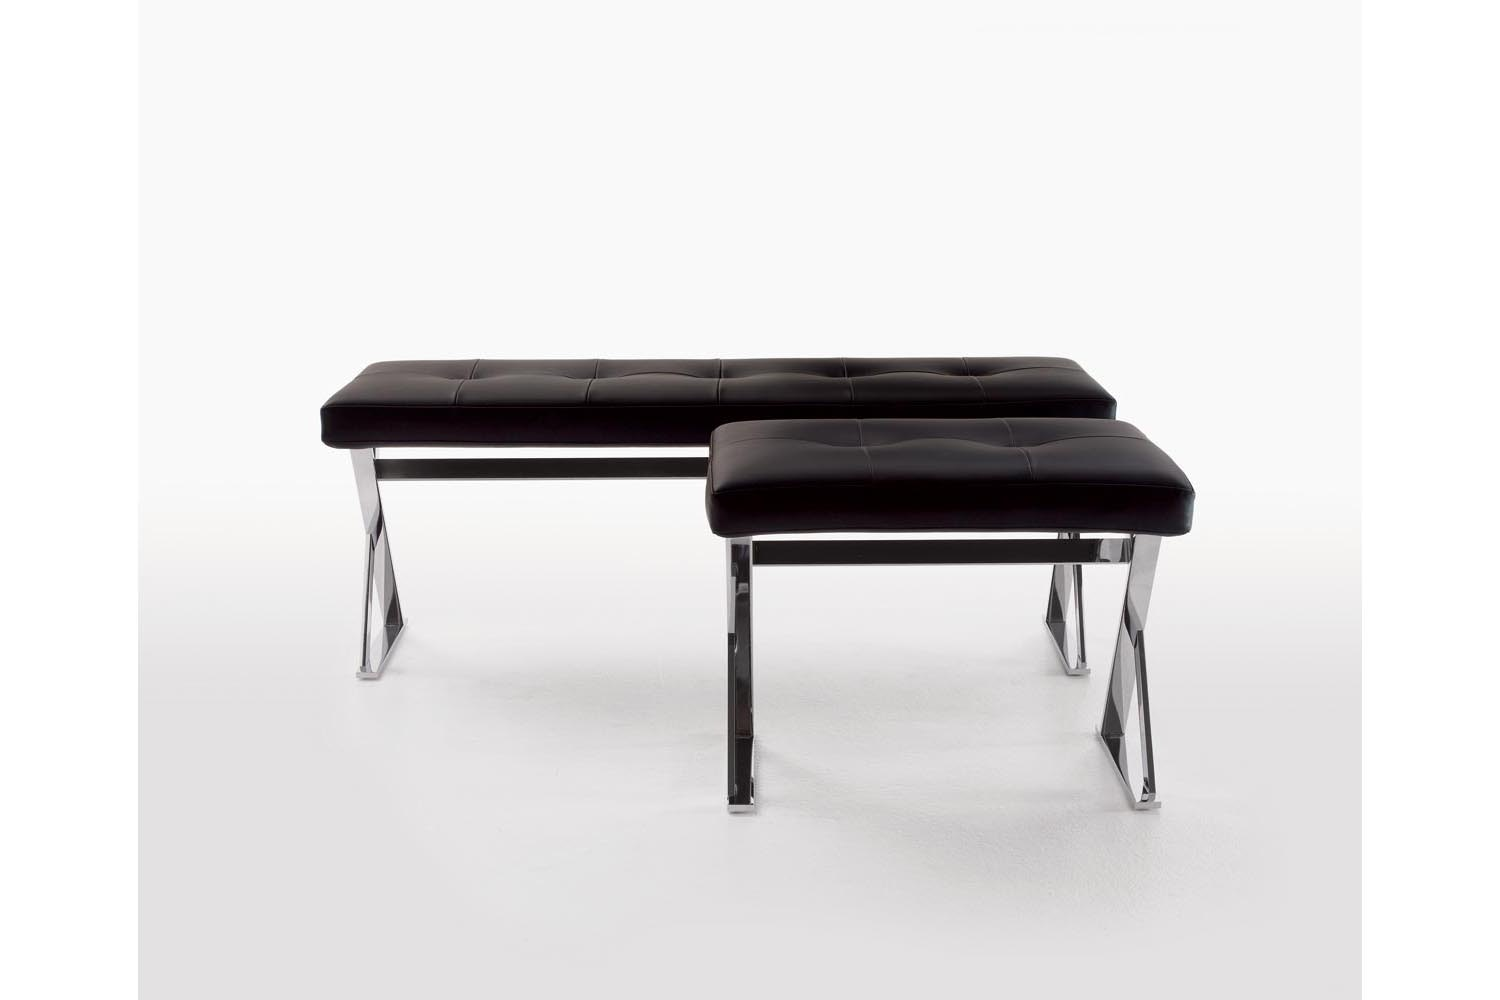 Pathos Bench by Antonio Citterio for Maxalto